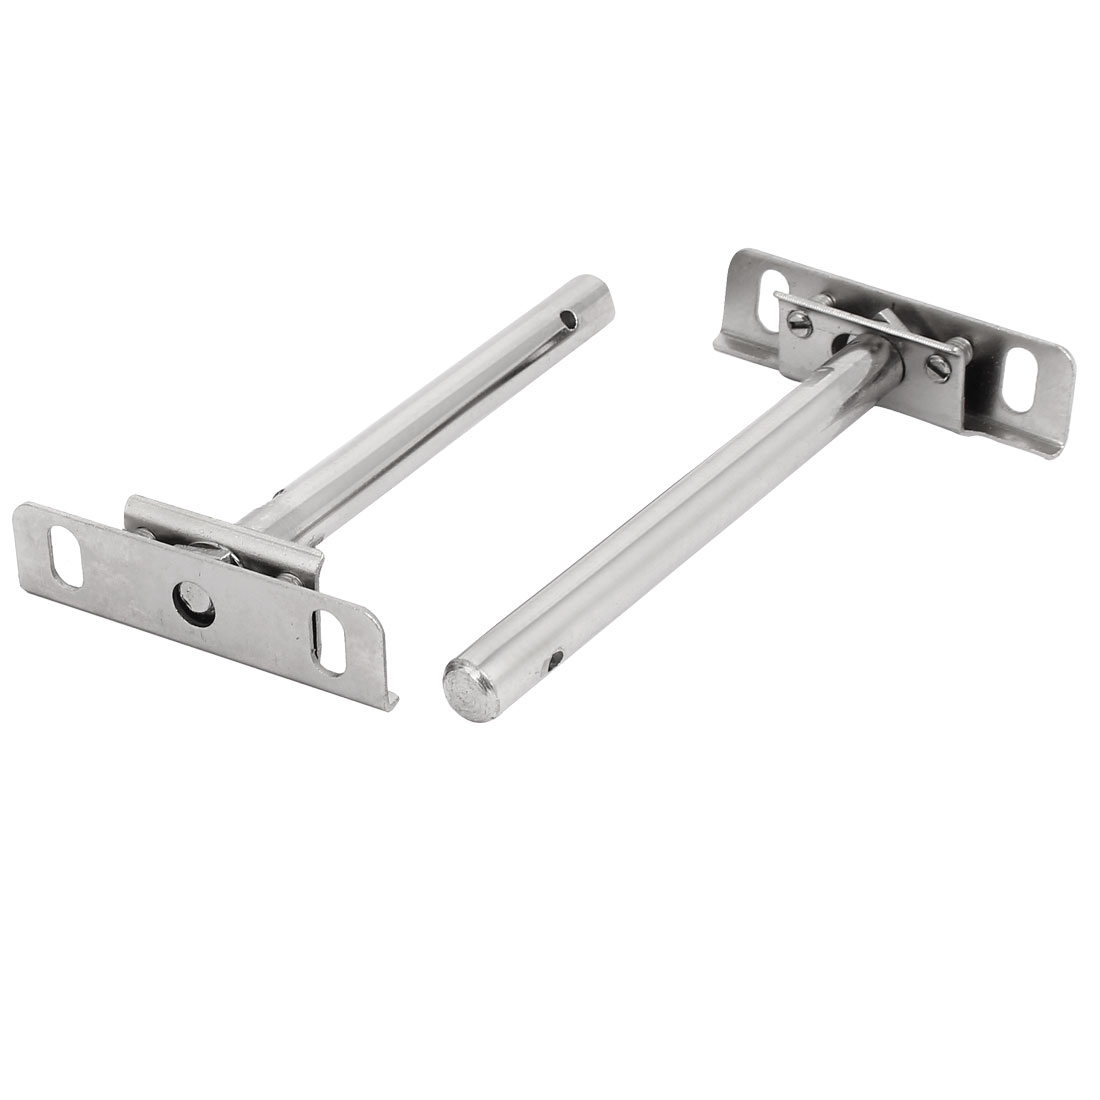 12mm x 125mm Metal Hidden Concealed Invisible Shelf Support Bracket 2pcs